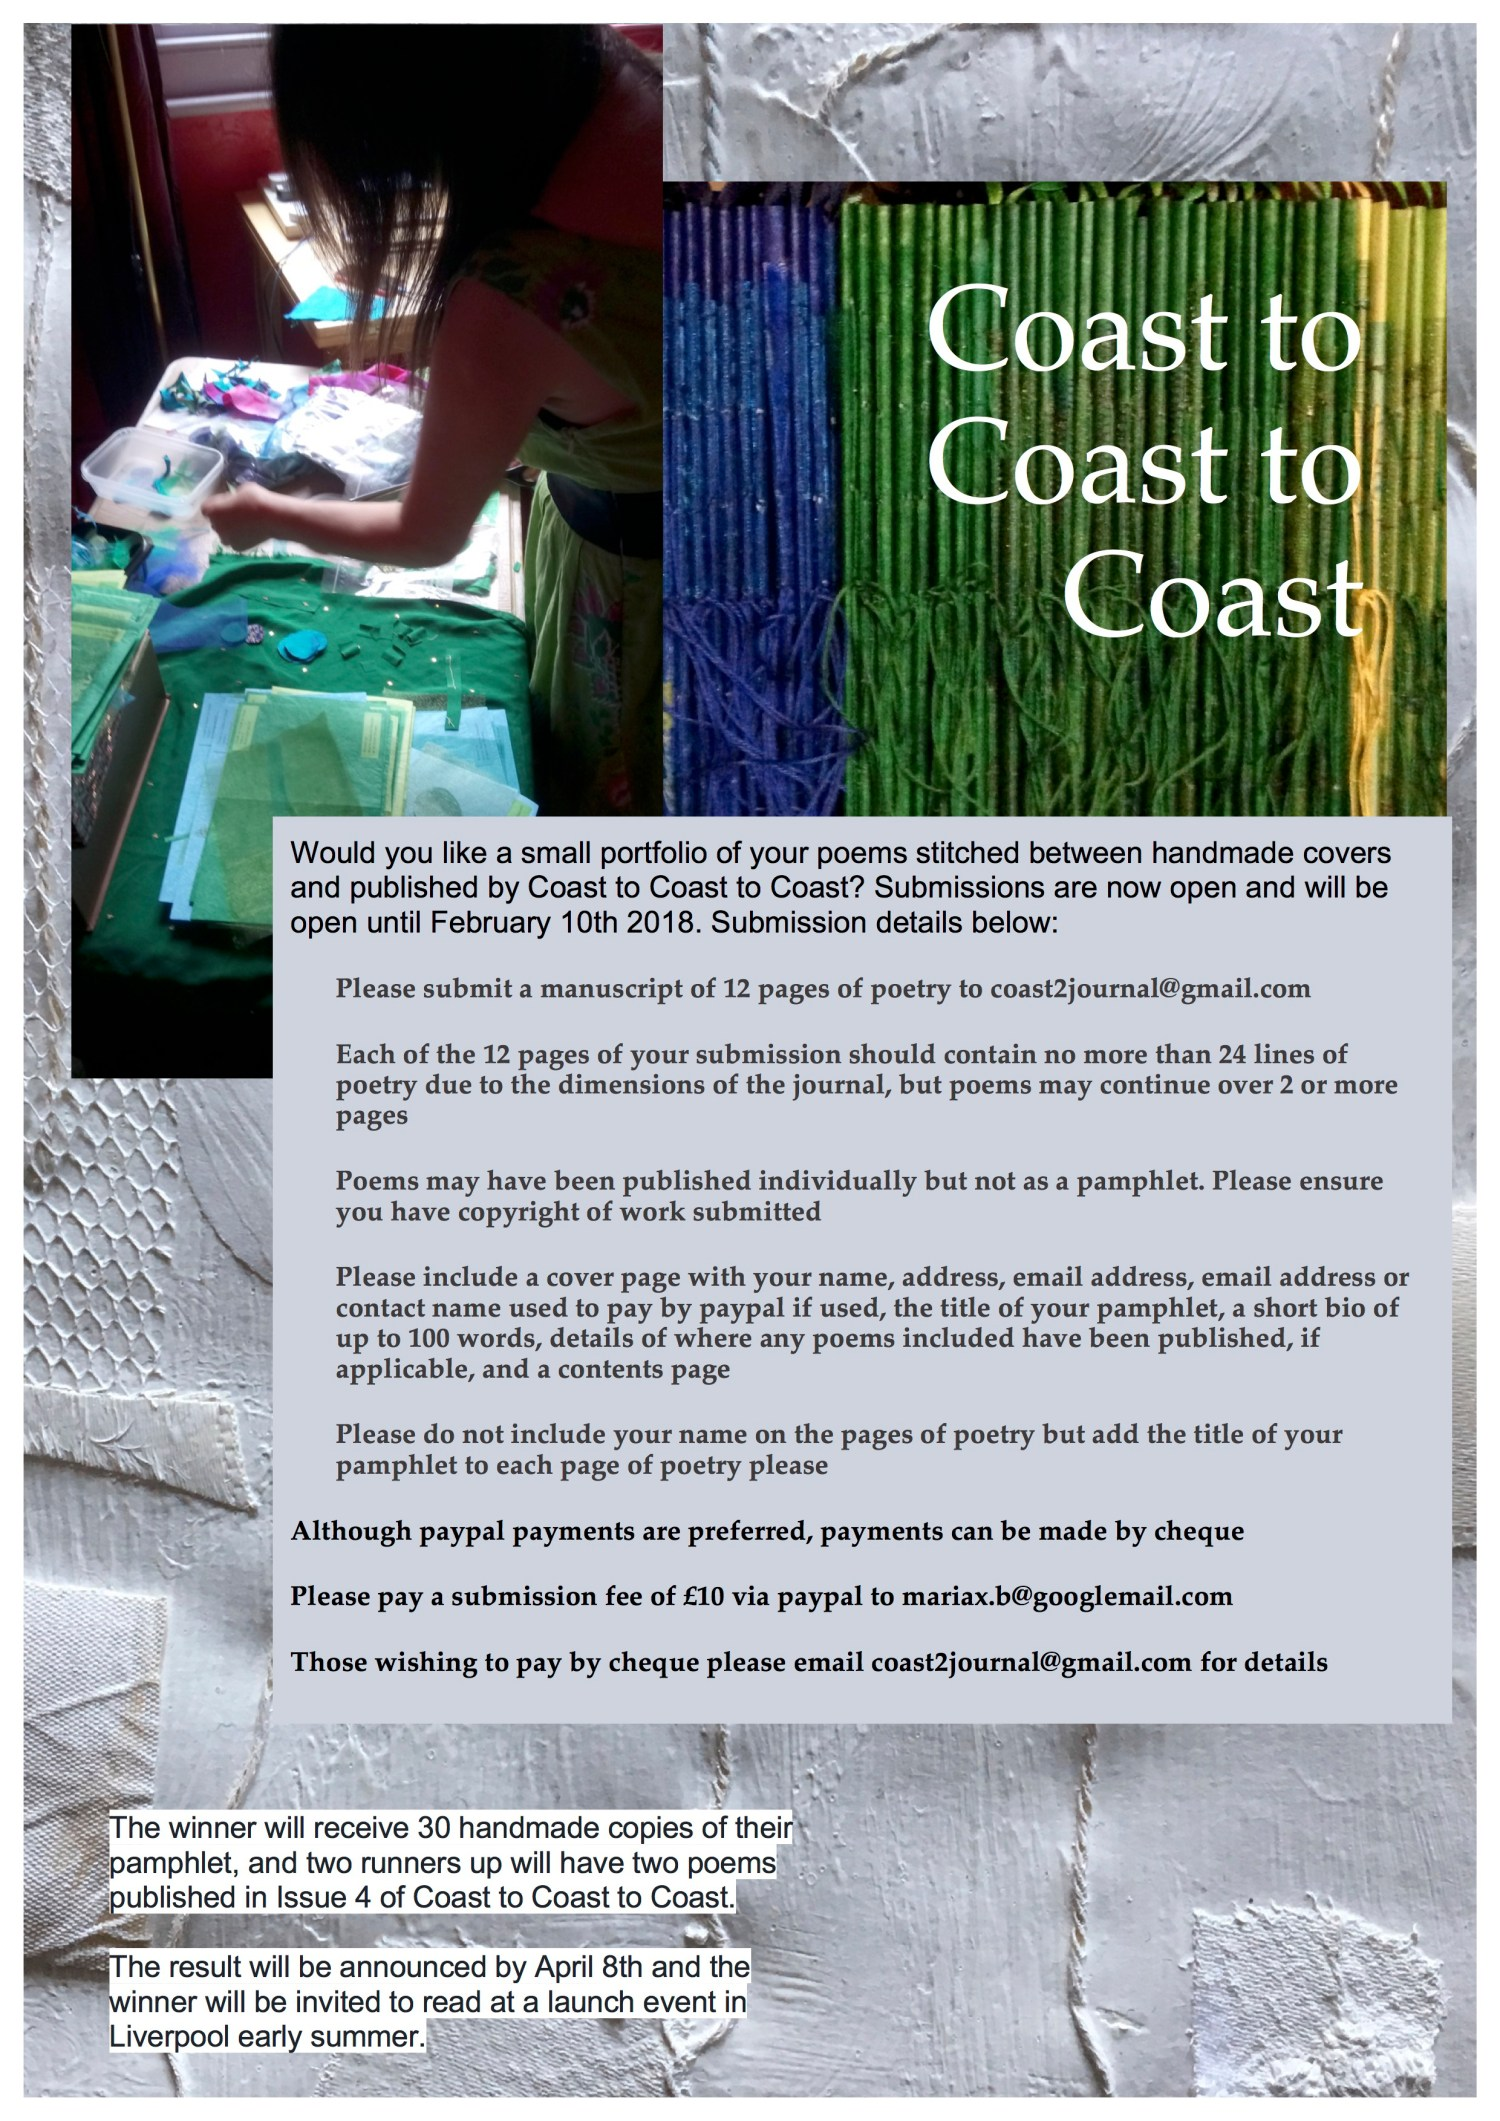 Coast to Coast to Coast handmade poetry pamphlet competition